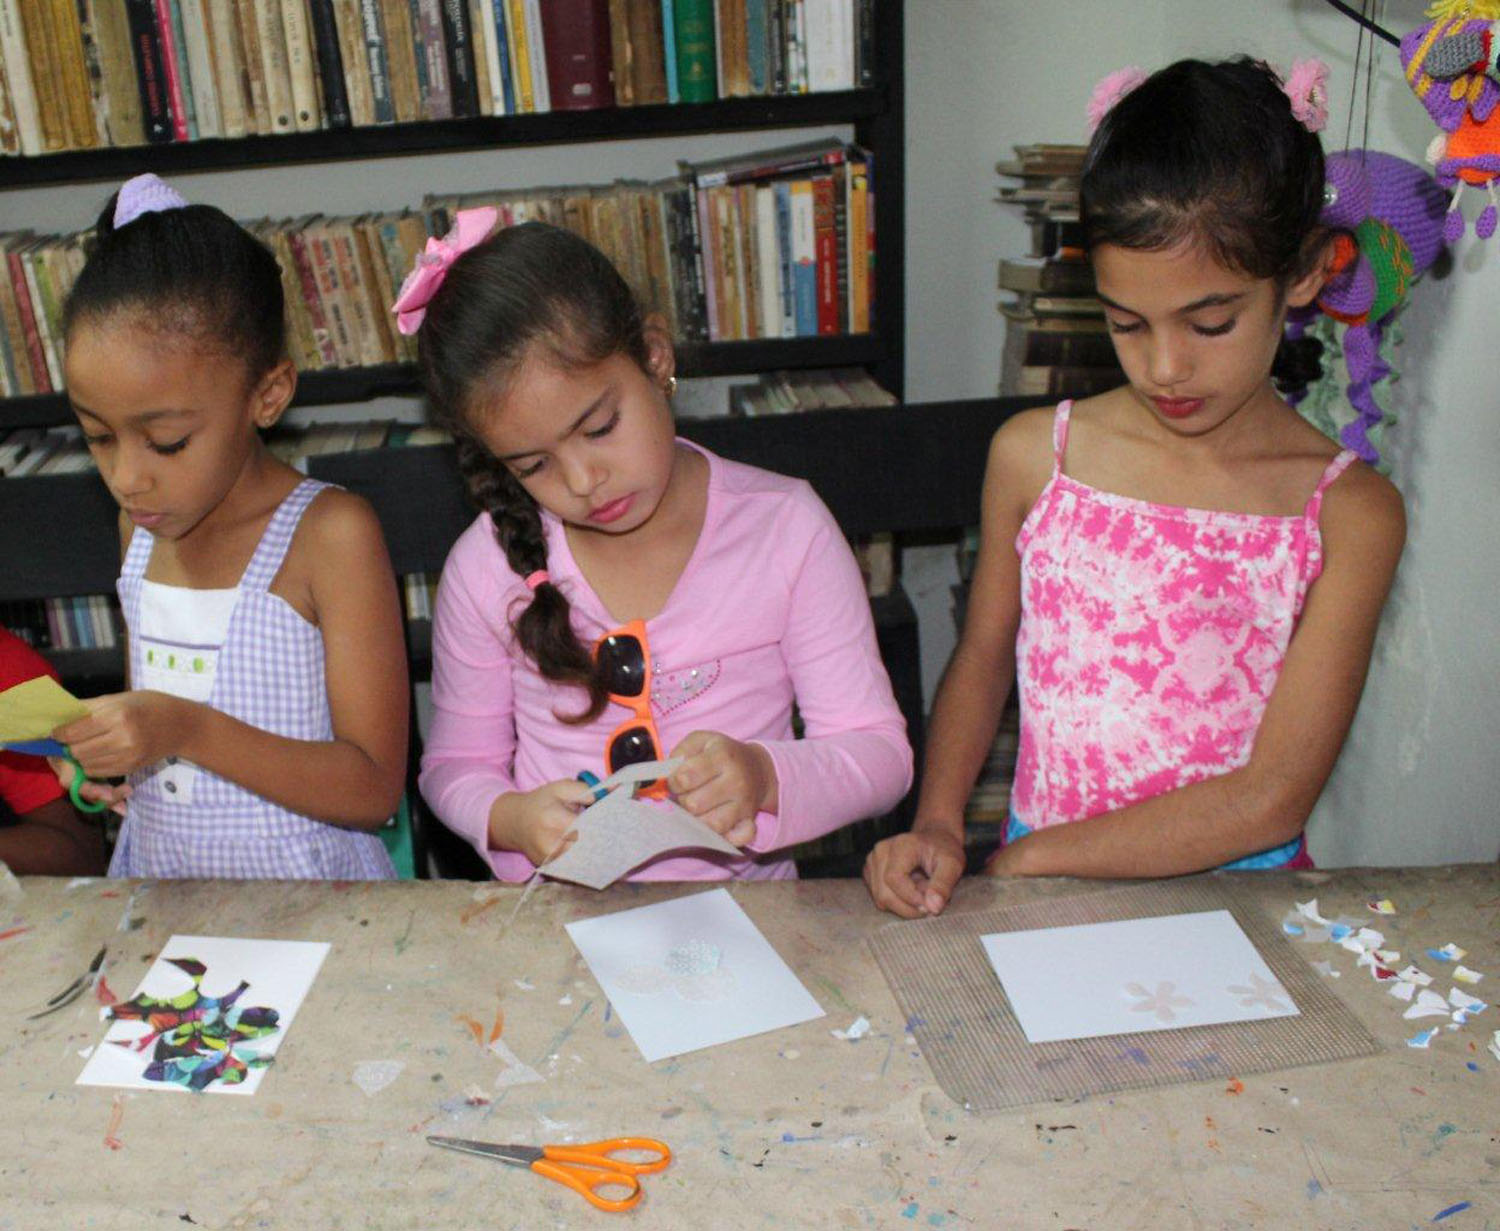 havana-projects-kids-workshop-11.jpg